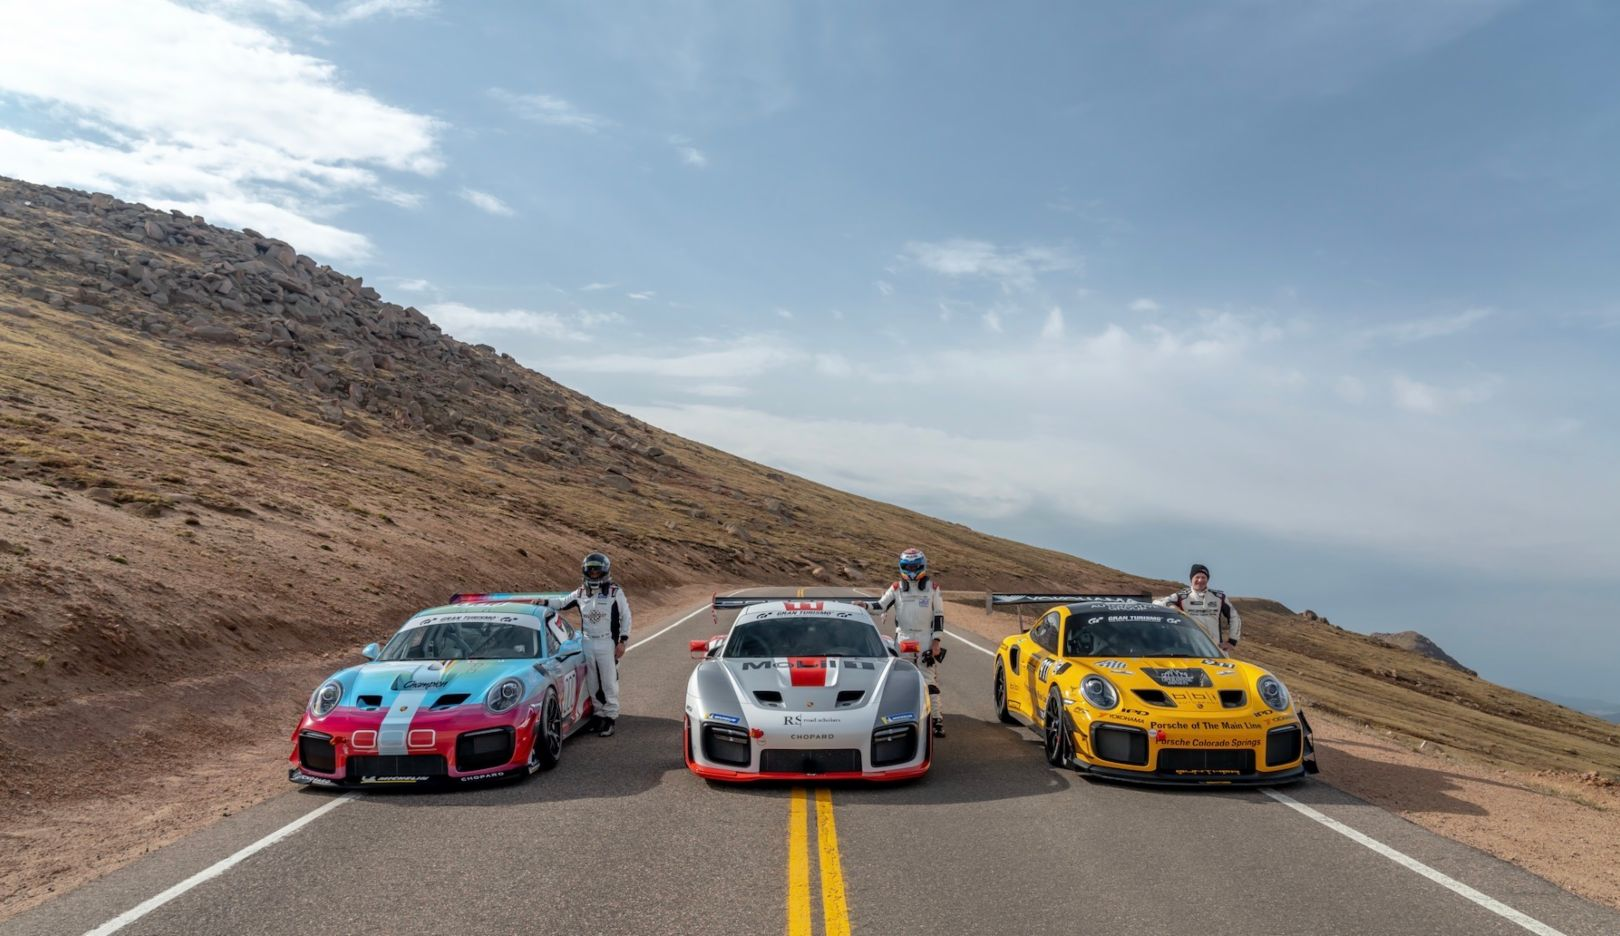 David Donner and his 911 GT2 RS Clubsport, Jeff Zwart and his 935, David Donohue and his 911 GT2 RS Clubsport, l-r, Pikes Peak International Hill Climb, 2020, Porsche AG